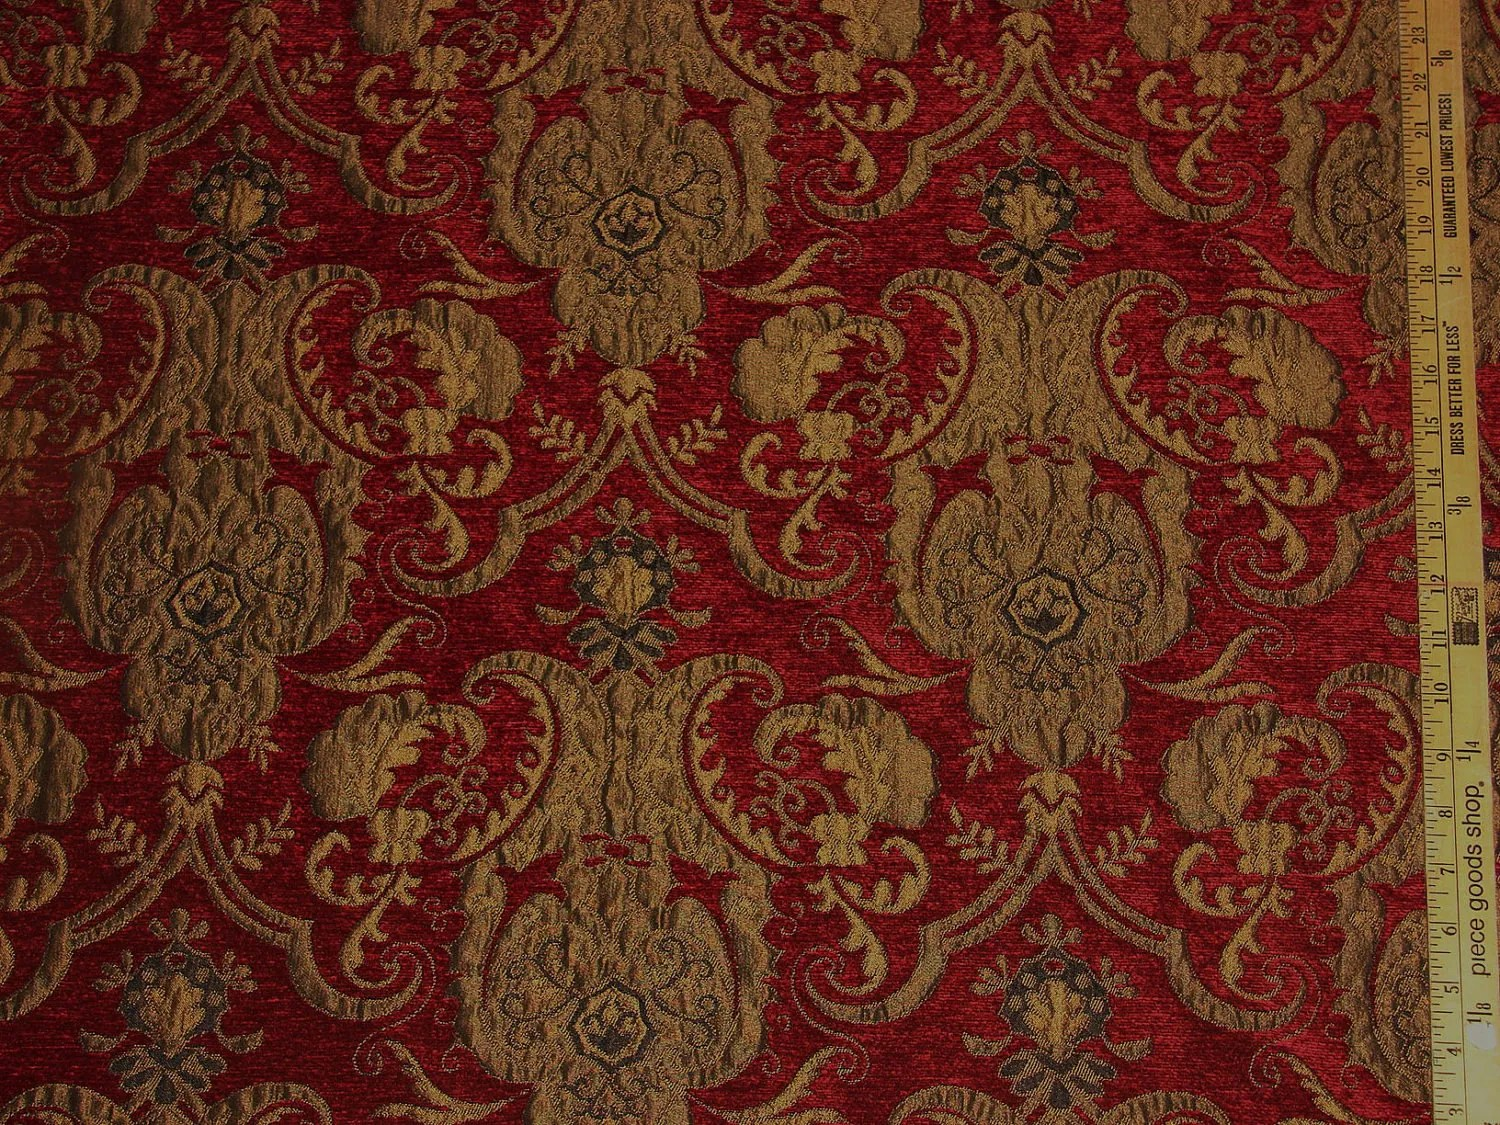 Damask Upholstery Red Fabric